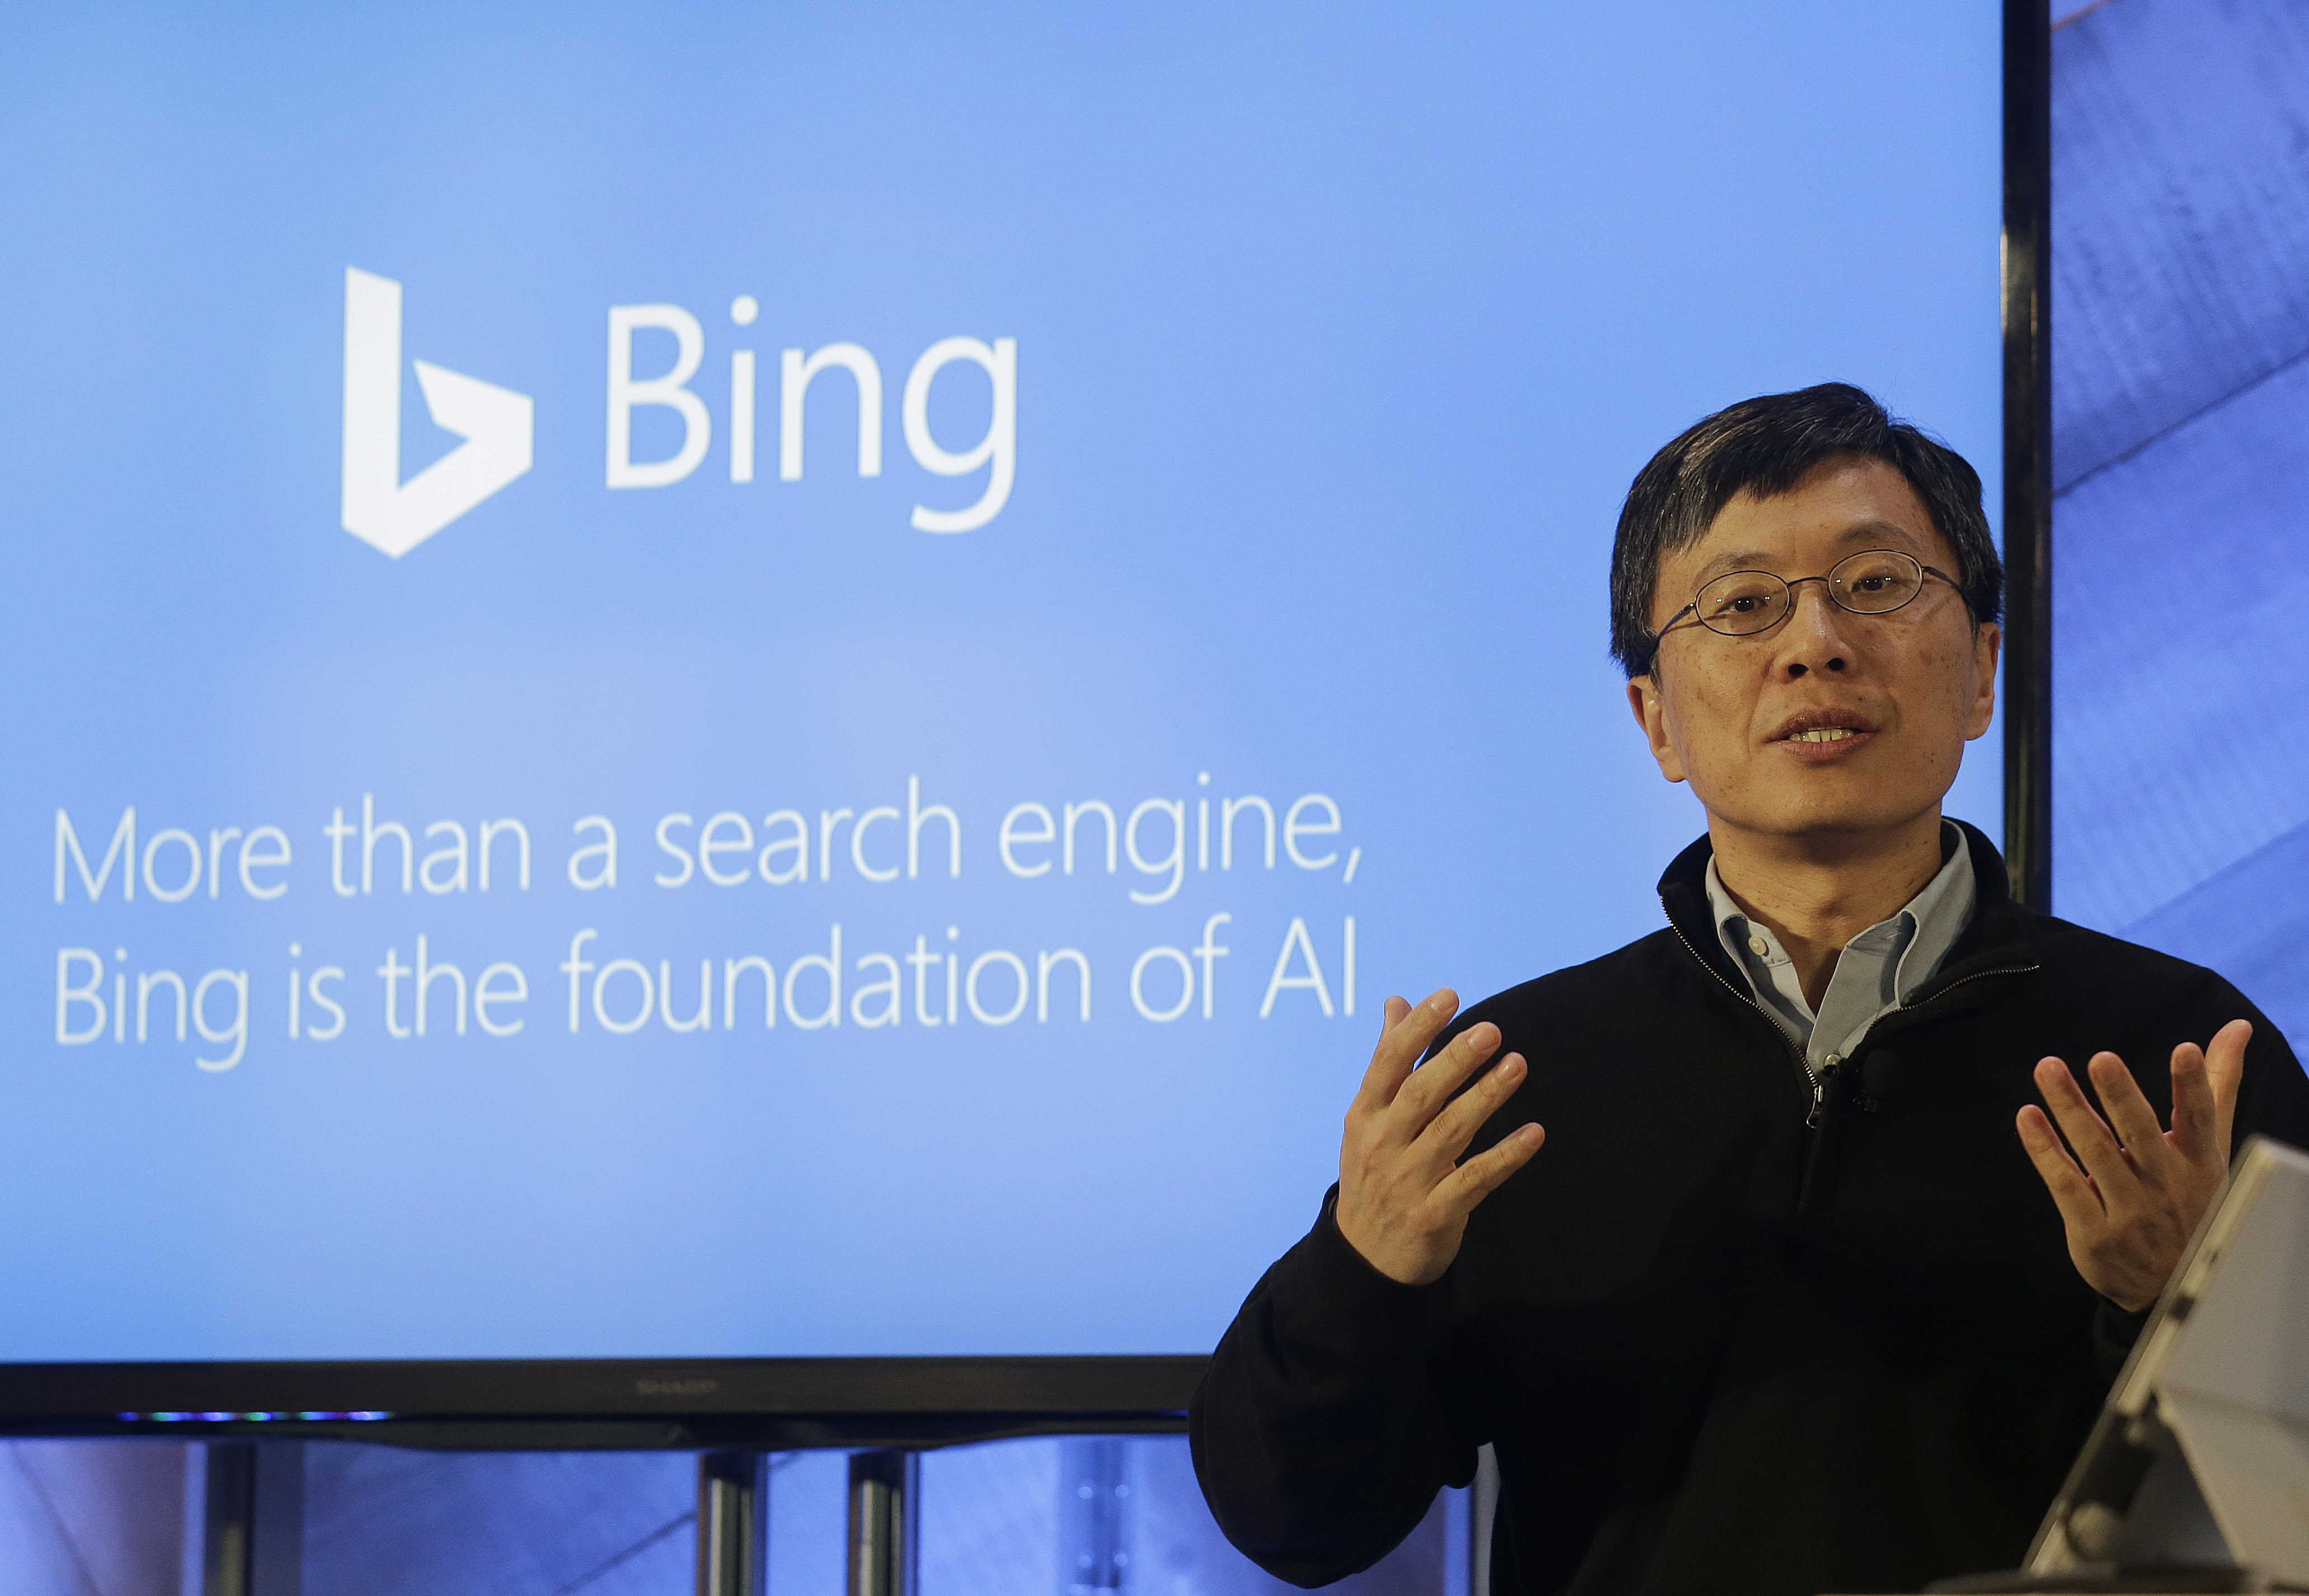 Harry Shum,executive vice president ofMicrosoft'sArtificial Intelligence and Research, speaks at a Microsoft event in San Francisco, California, Dec. 13, 2017.